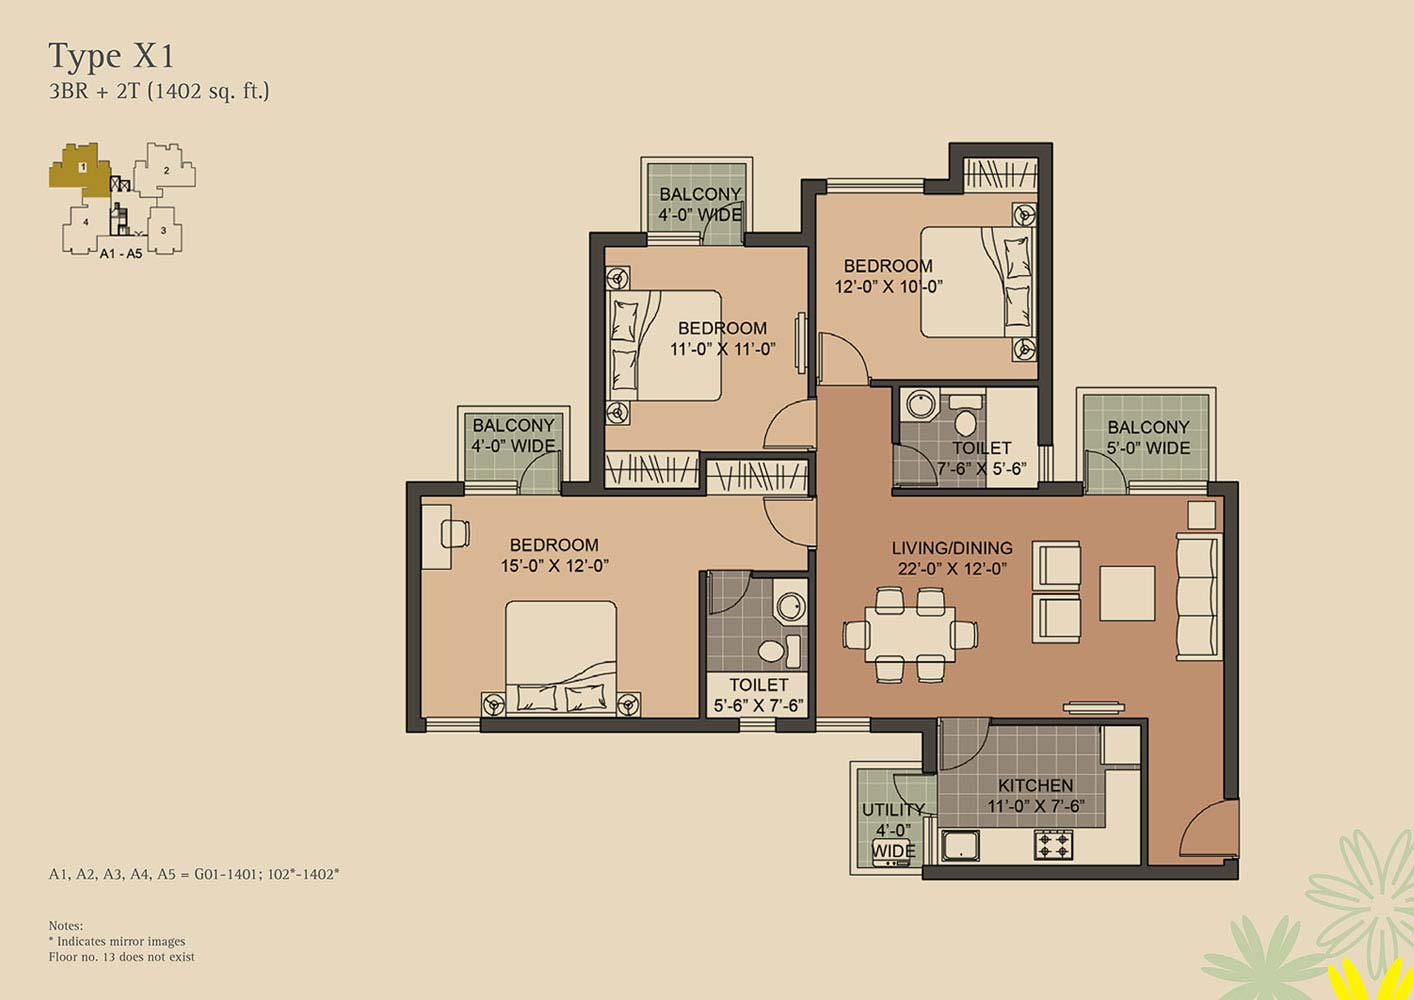 Buy 2 Bhk Flat In Gurgaon For Less Than Rs 1 Crore Unitech Crestview Electrical Wiring Diagram 3 Bedroom Floor Plan 3br 2t 1402 Sqft